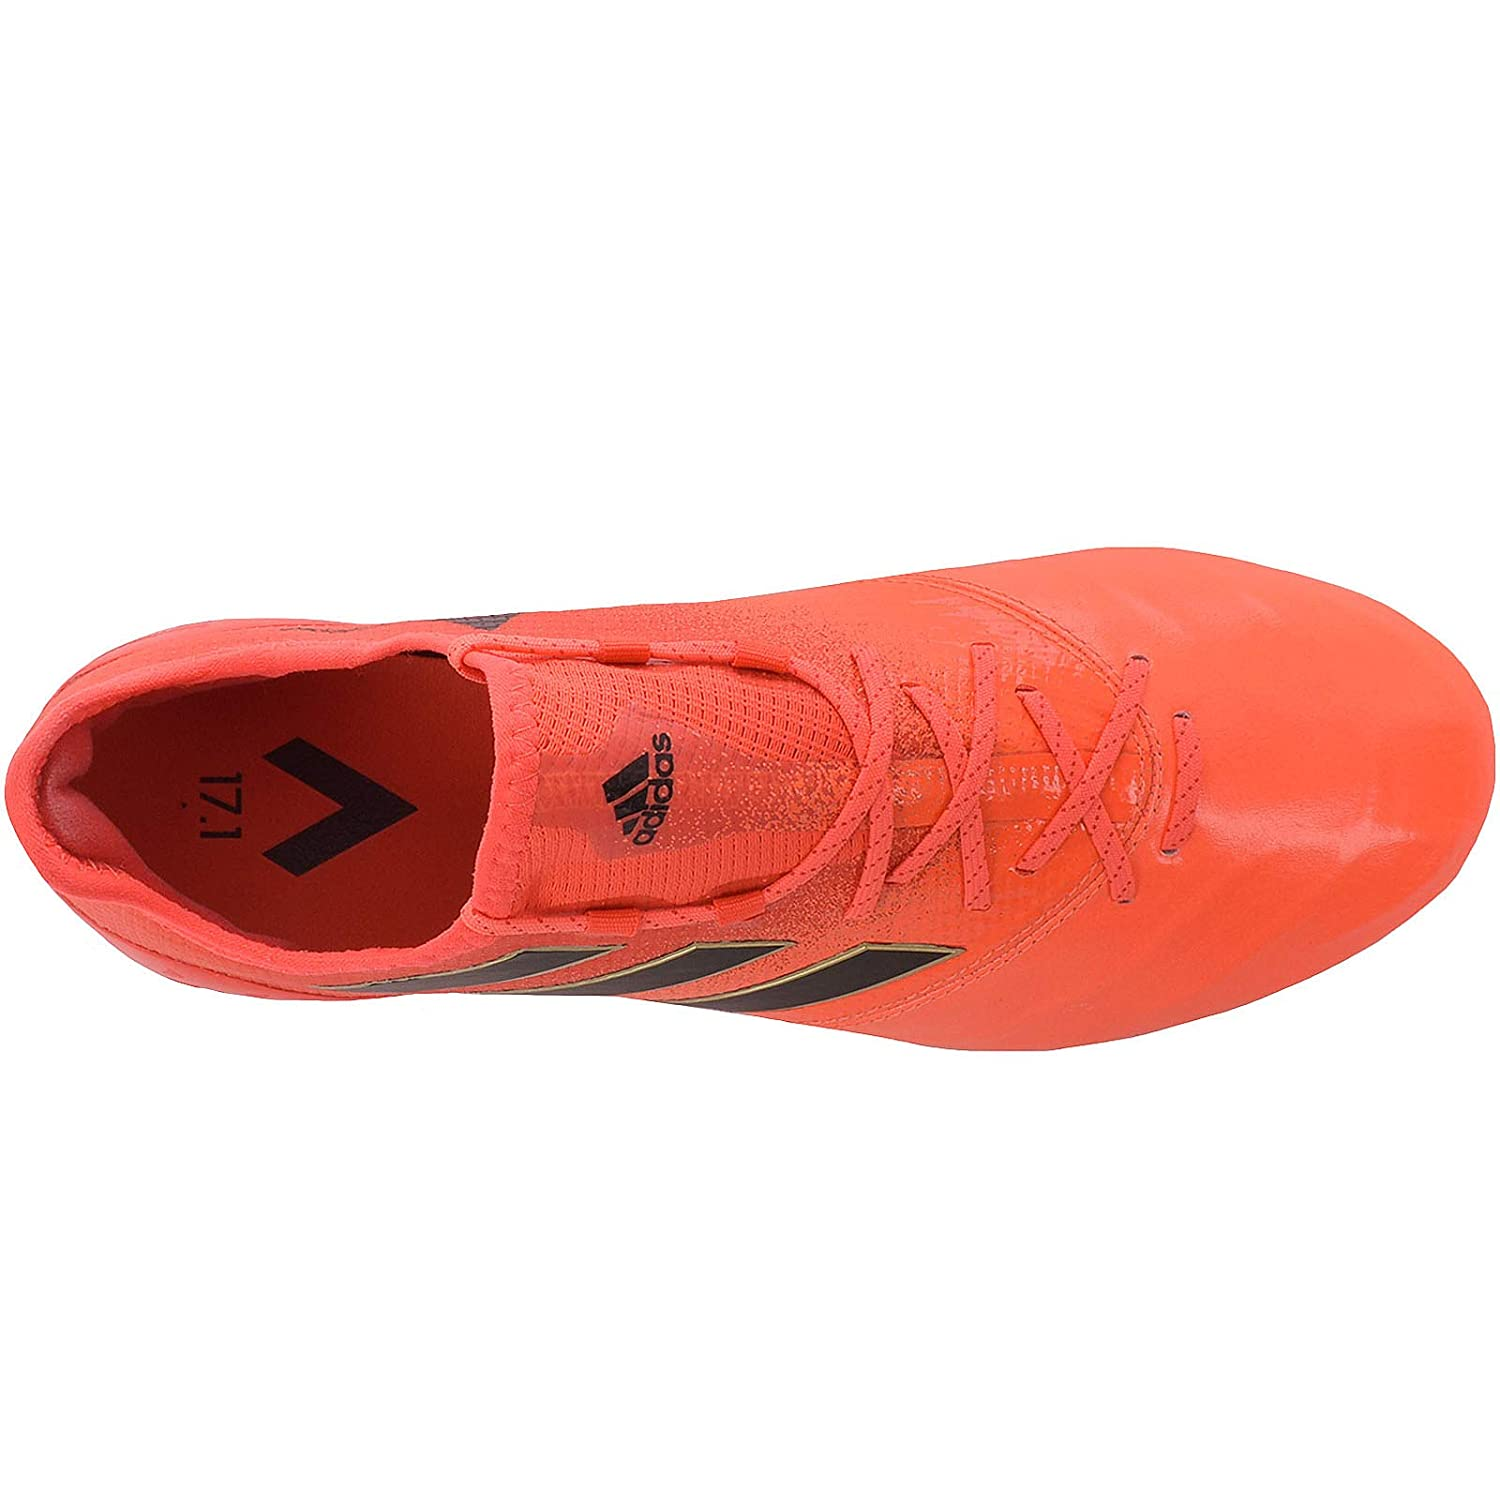 Adidas ACE 17.1 SG Leather Leather Leather - sorang cschwarz Solrot a394e1